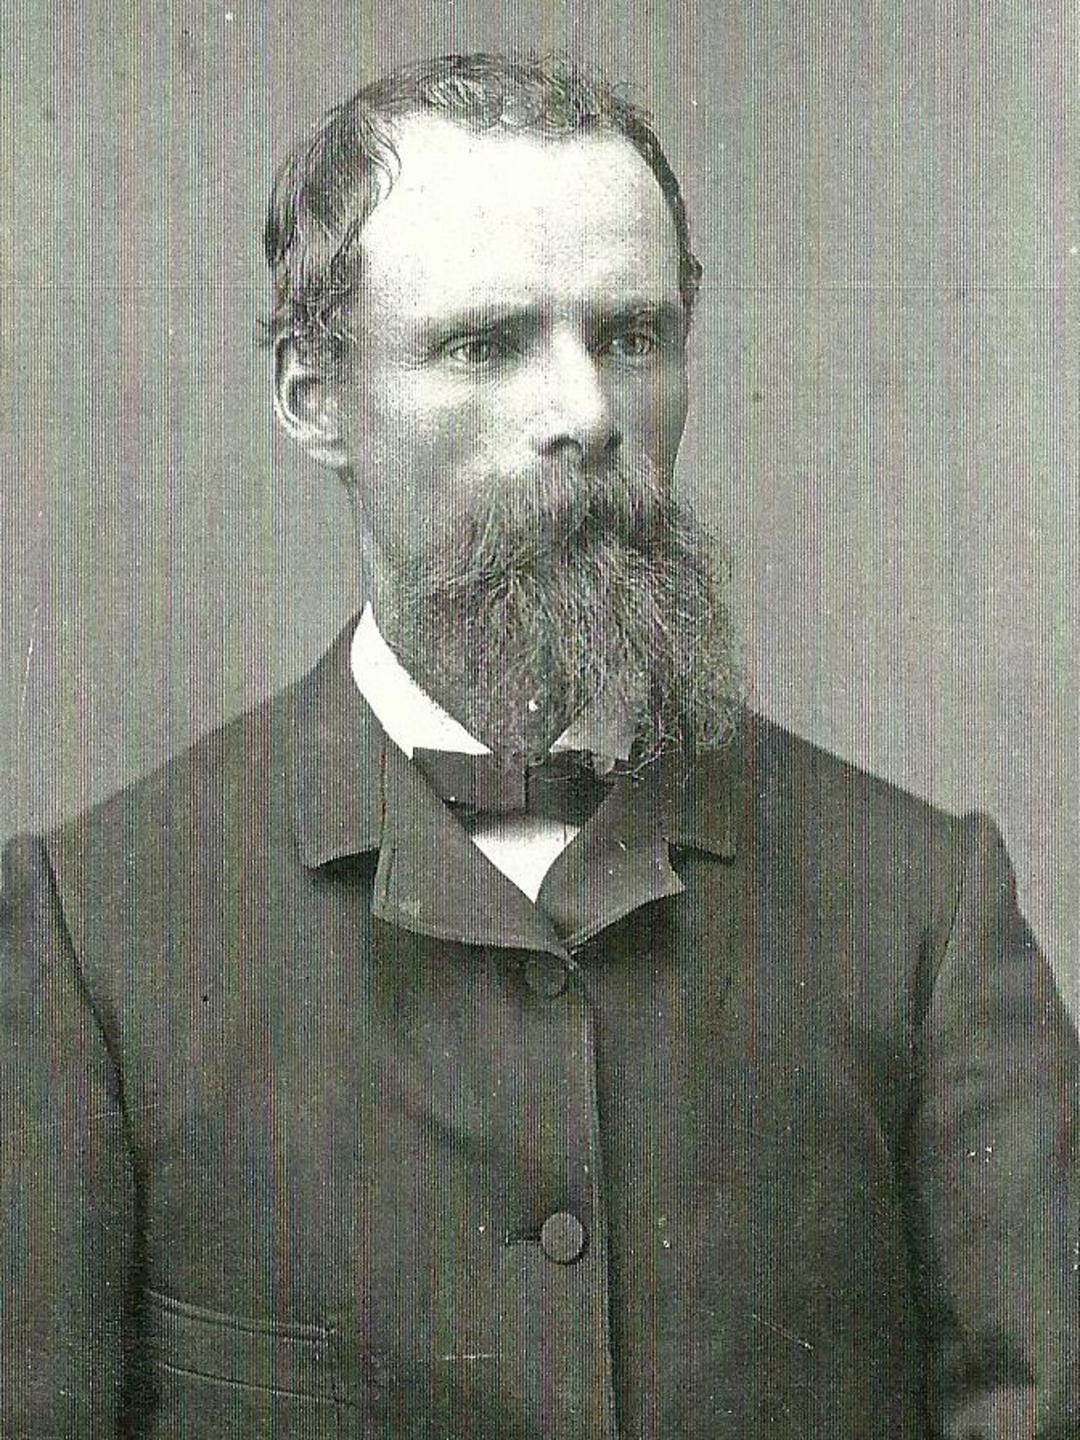 About 1879